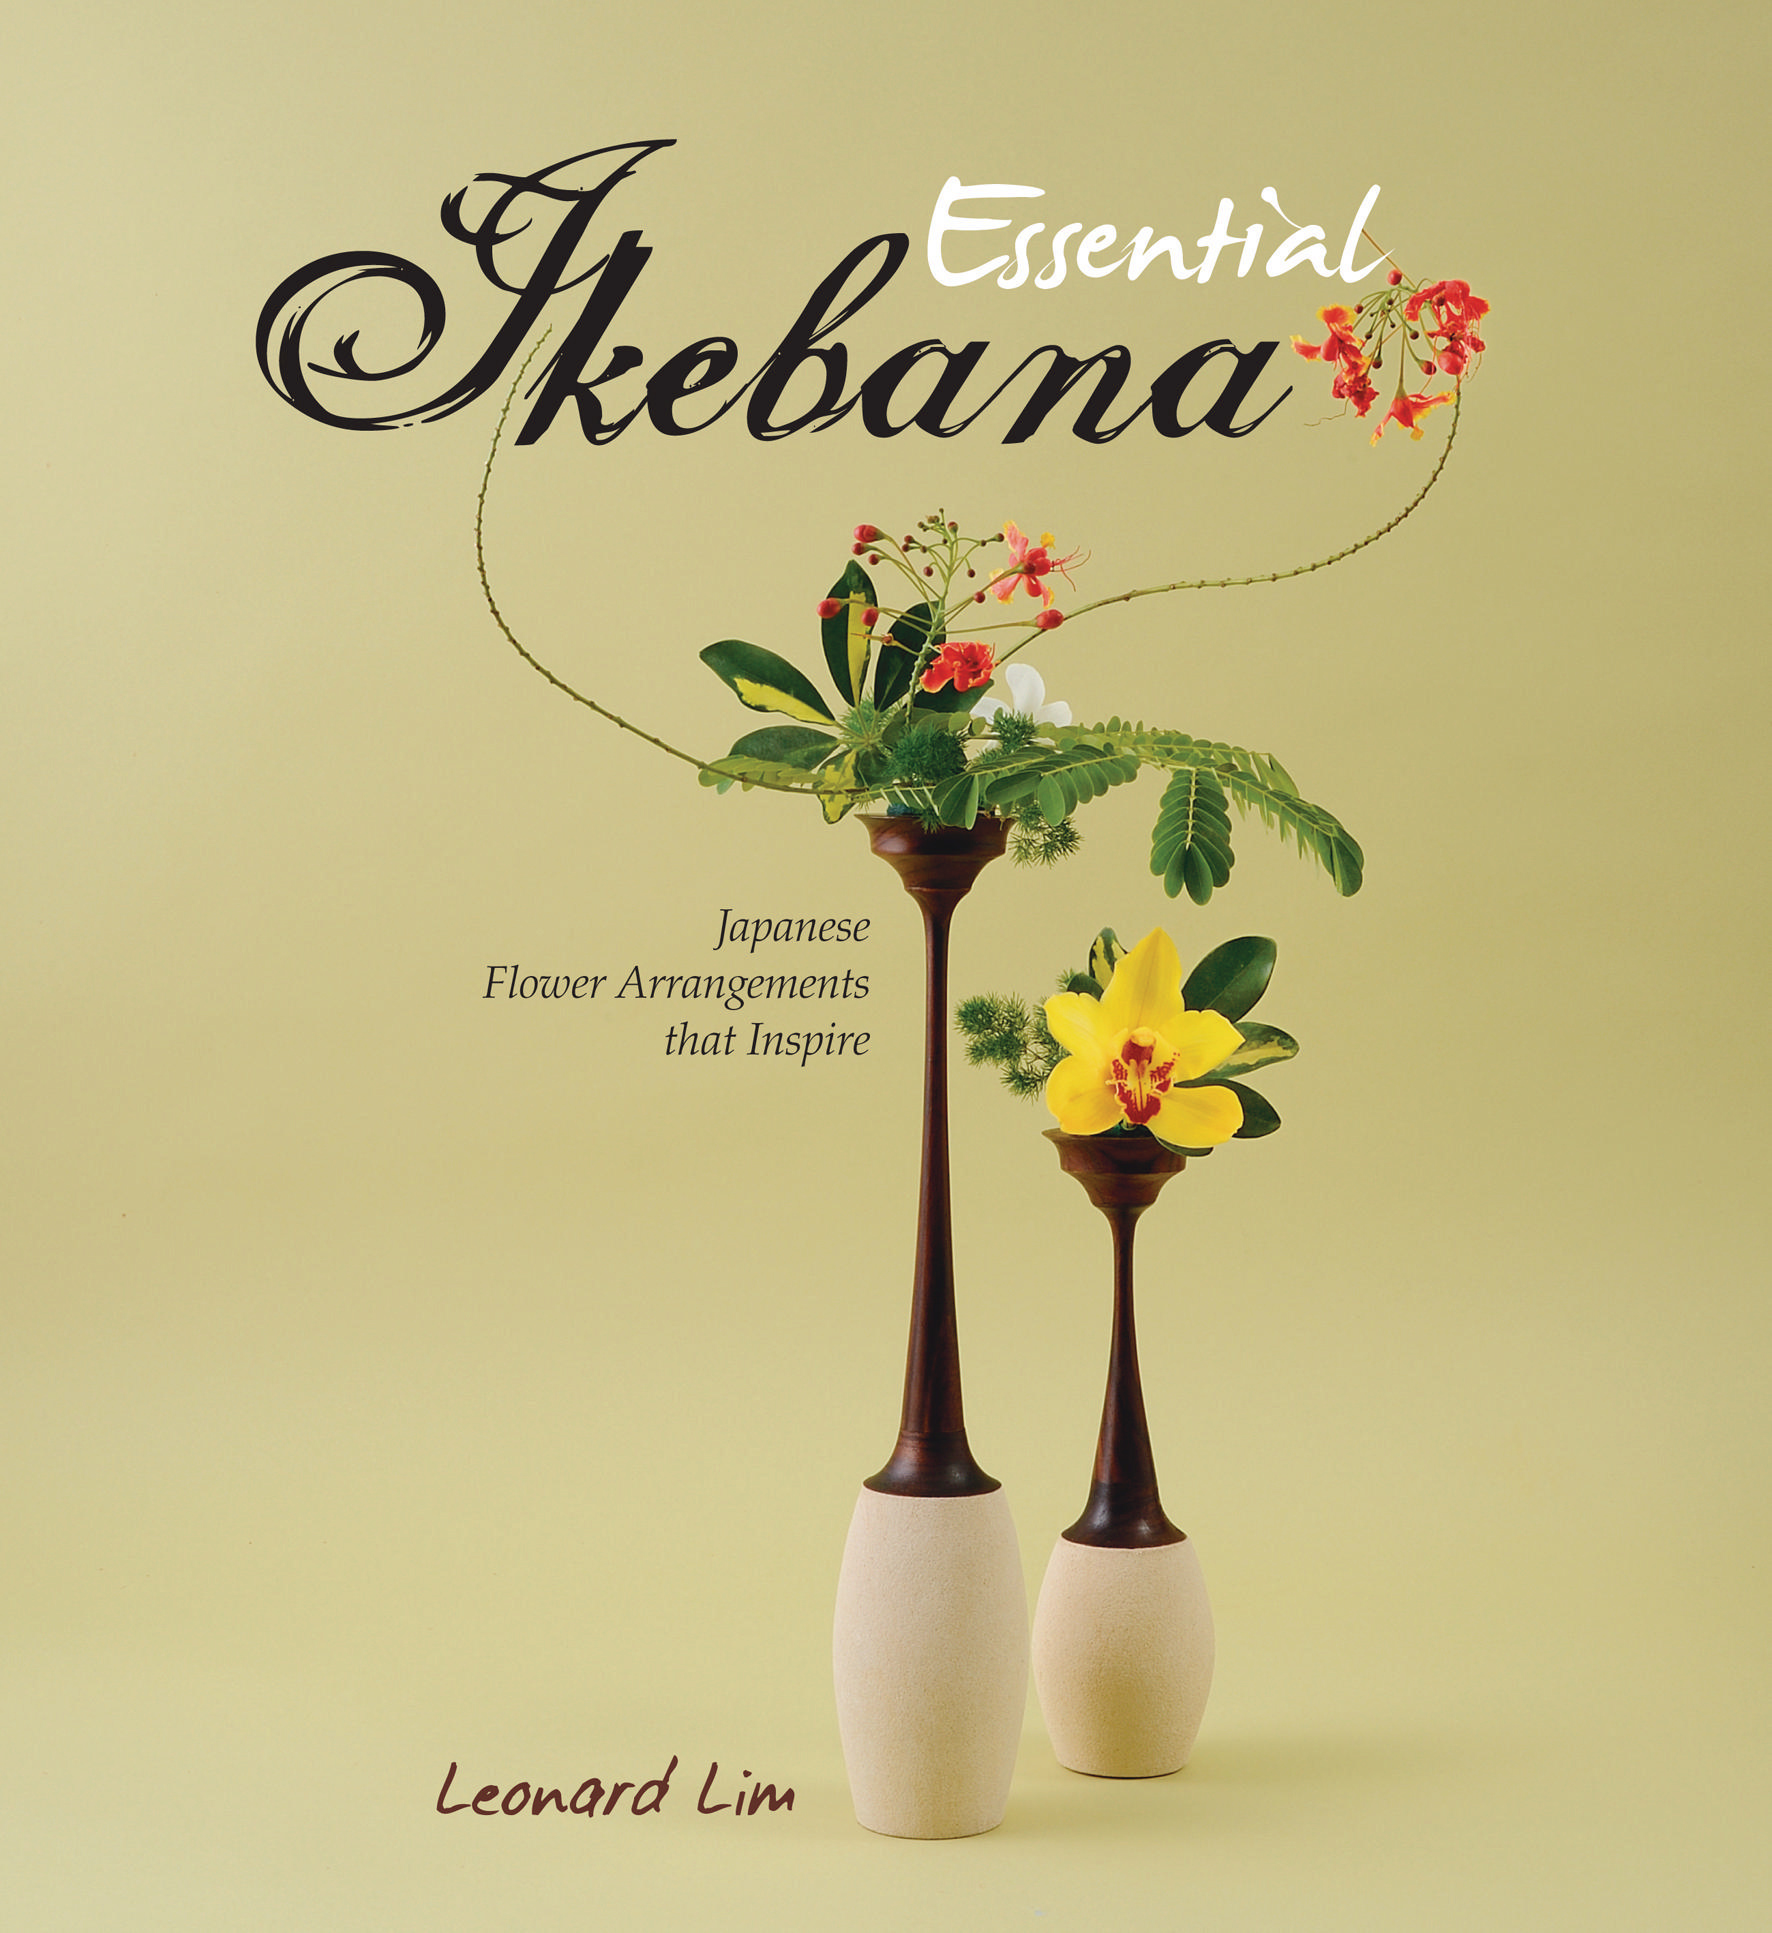 Essential Ikebana: Japanese Flower Arrangements that Inspire